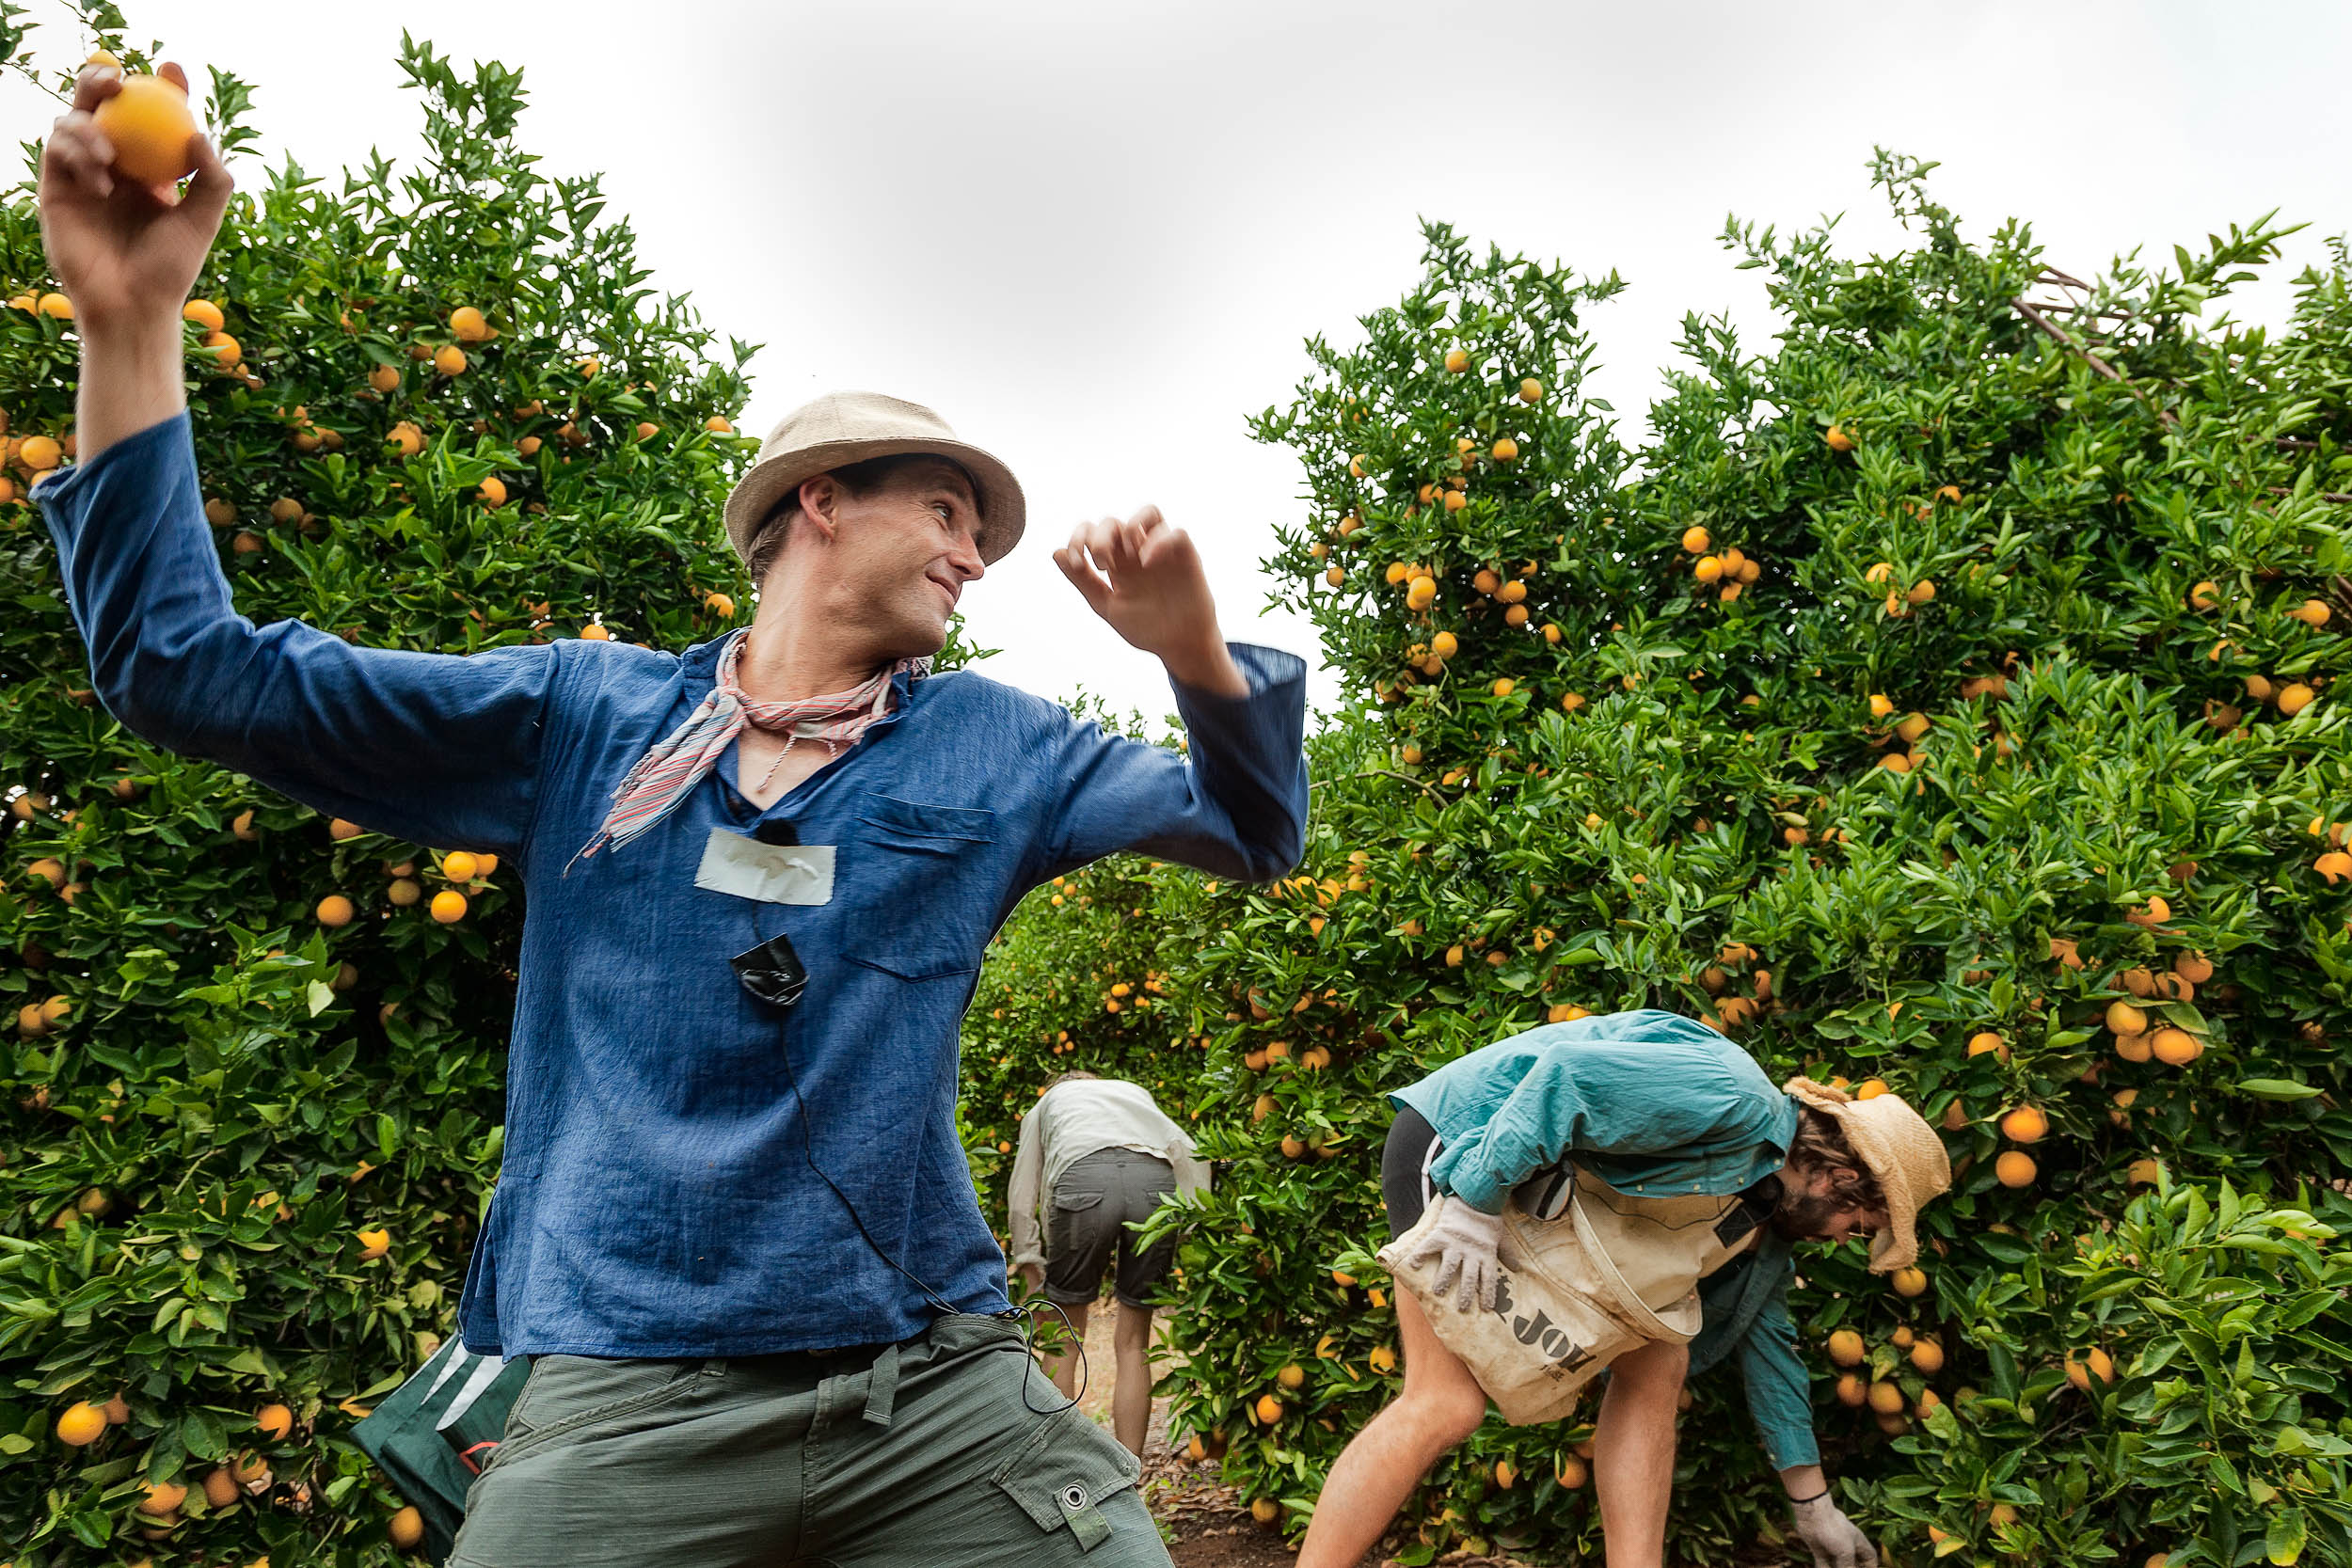 A    candid moment   , about to be unwound, recorded during a break in the filming of    Summer Coda    in the    orange groves    near    Mildura, Australia   .